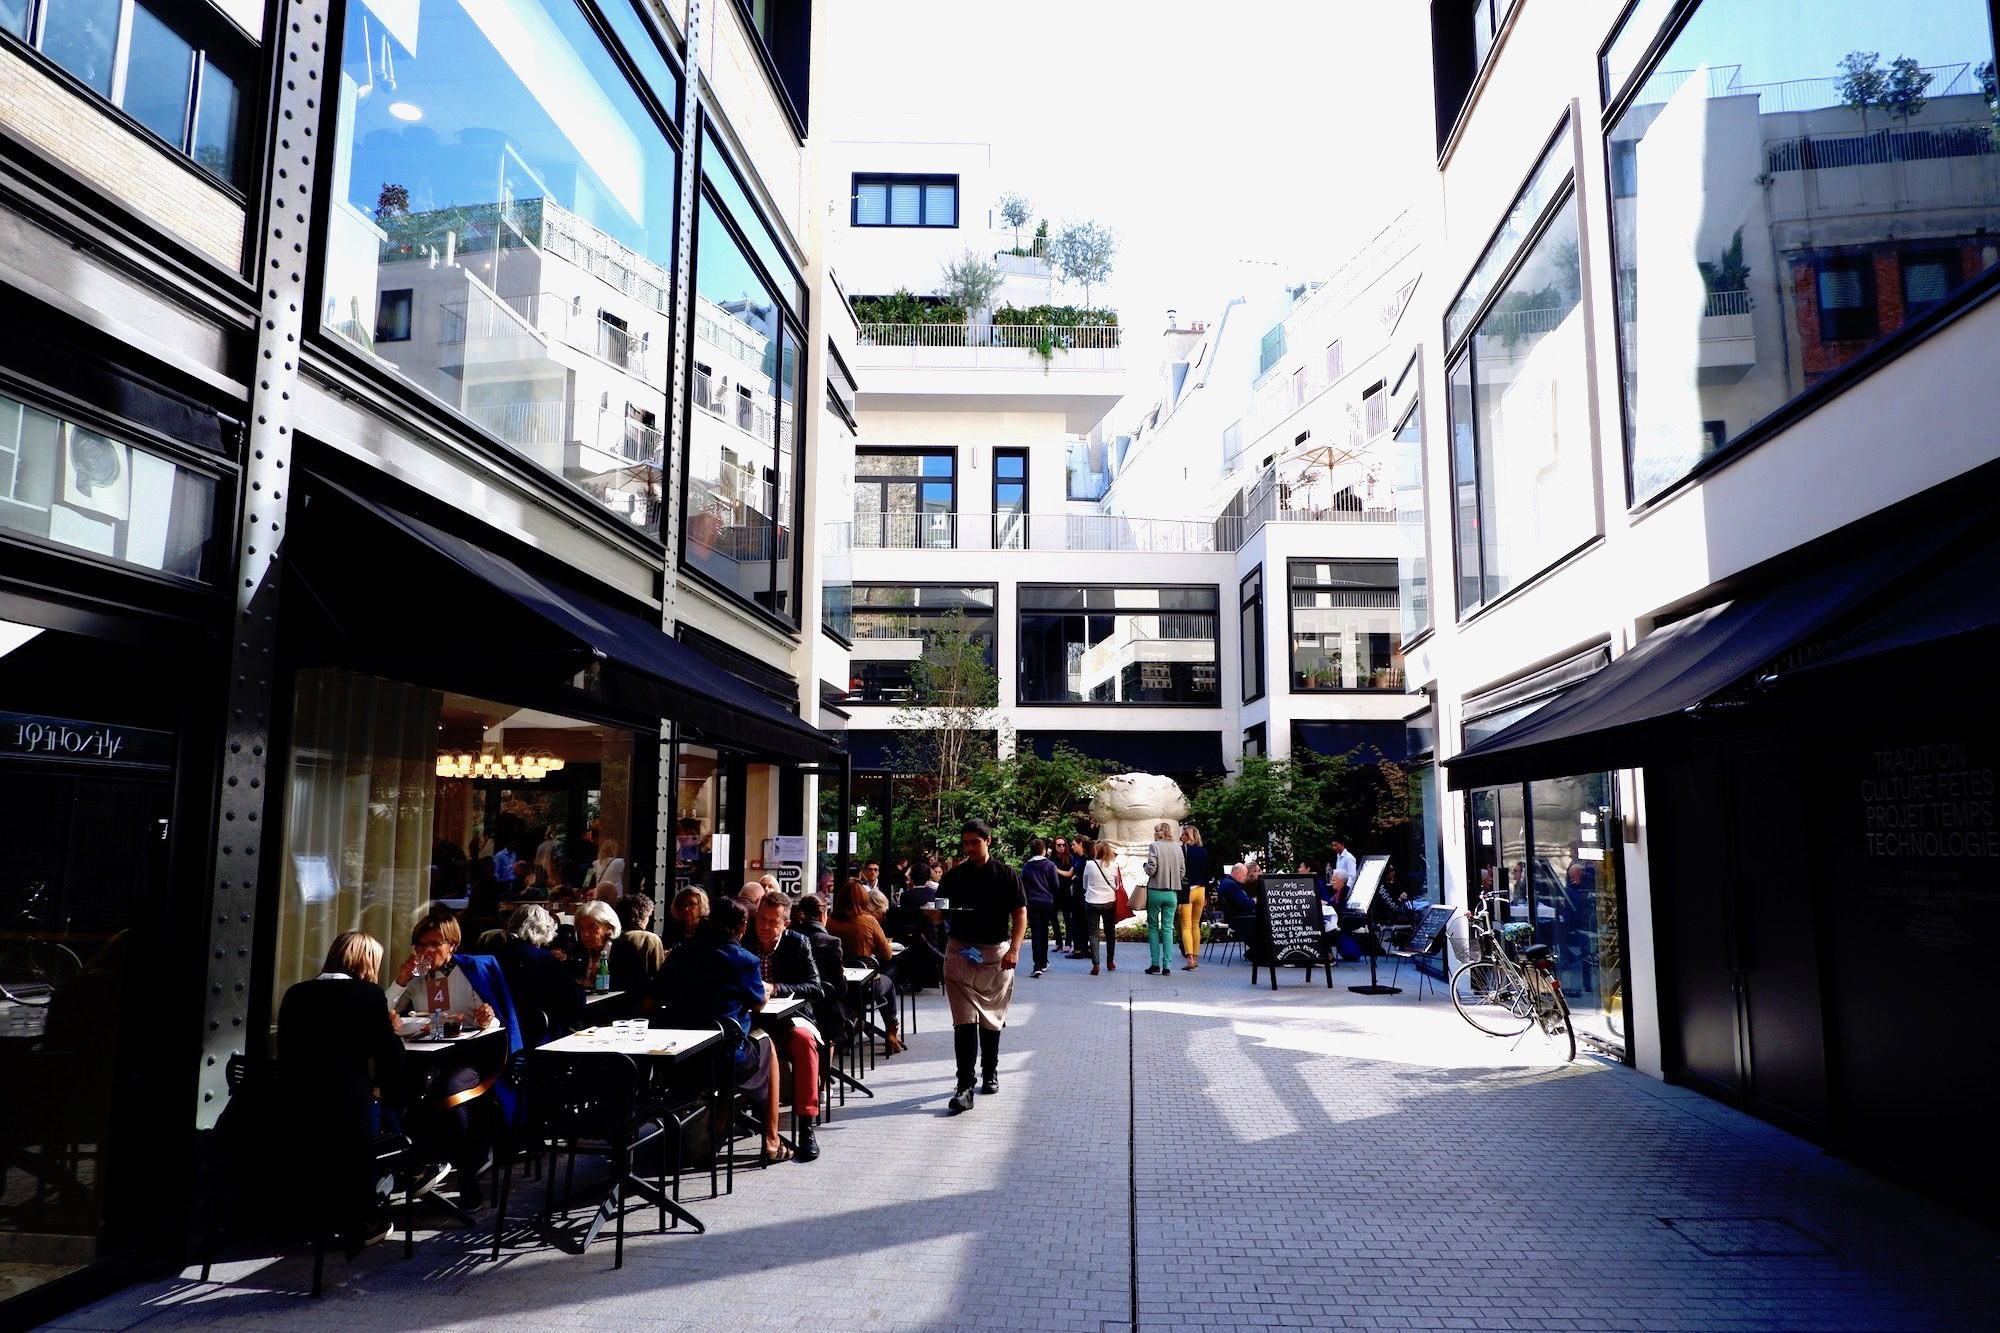 For French food and art in Paris, go to new hotspot Beaupassage in Saint-Germain-des-Près.